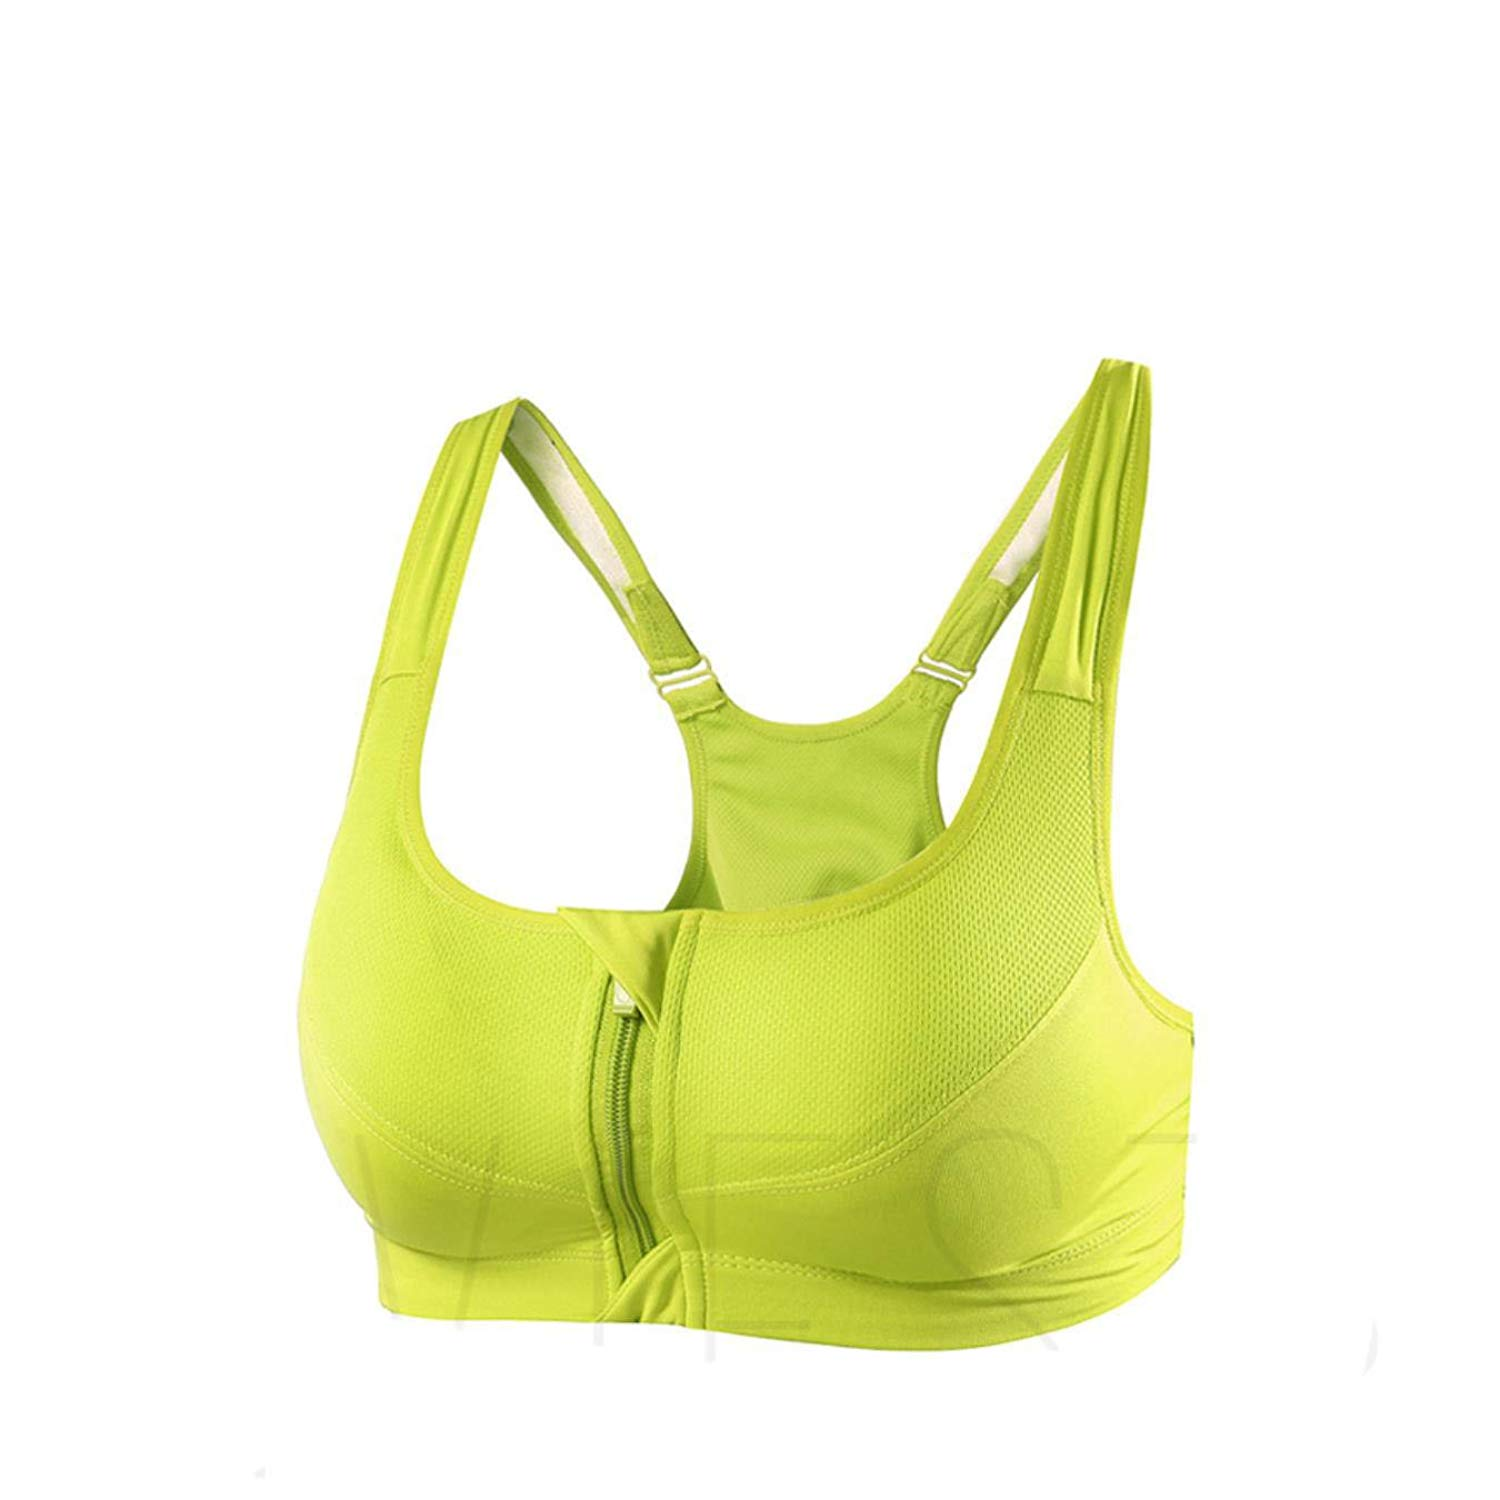 c02ad68d2f6 Get Quotations · Front-Close Sports Bra Color Colorful Yoga Gym Jogging  High Support Zipper Bra Top